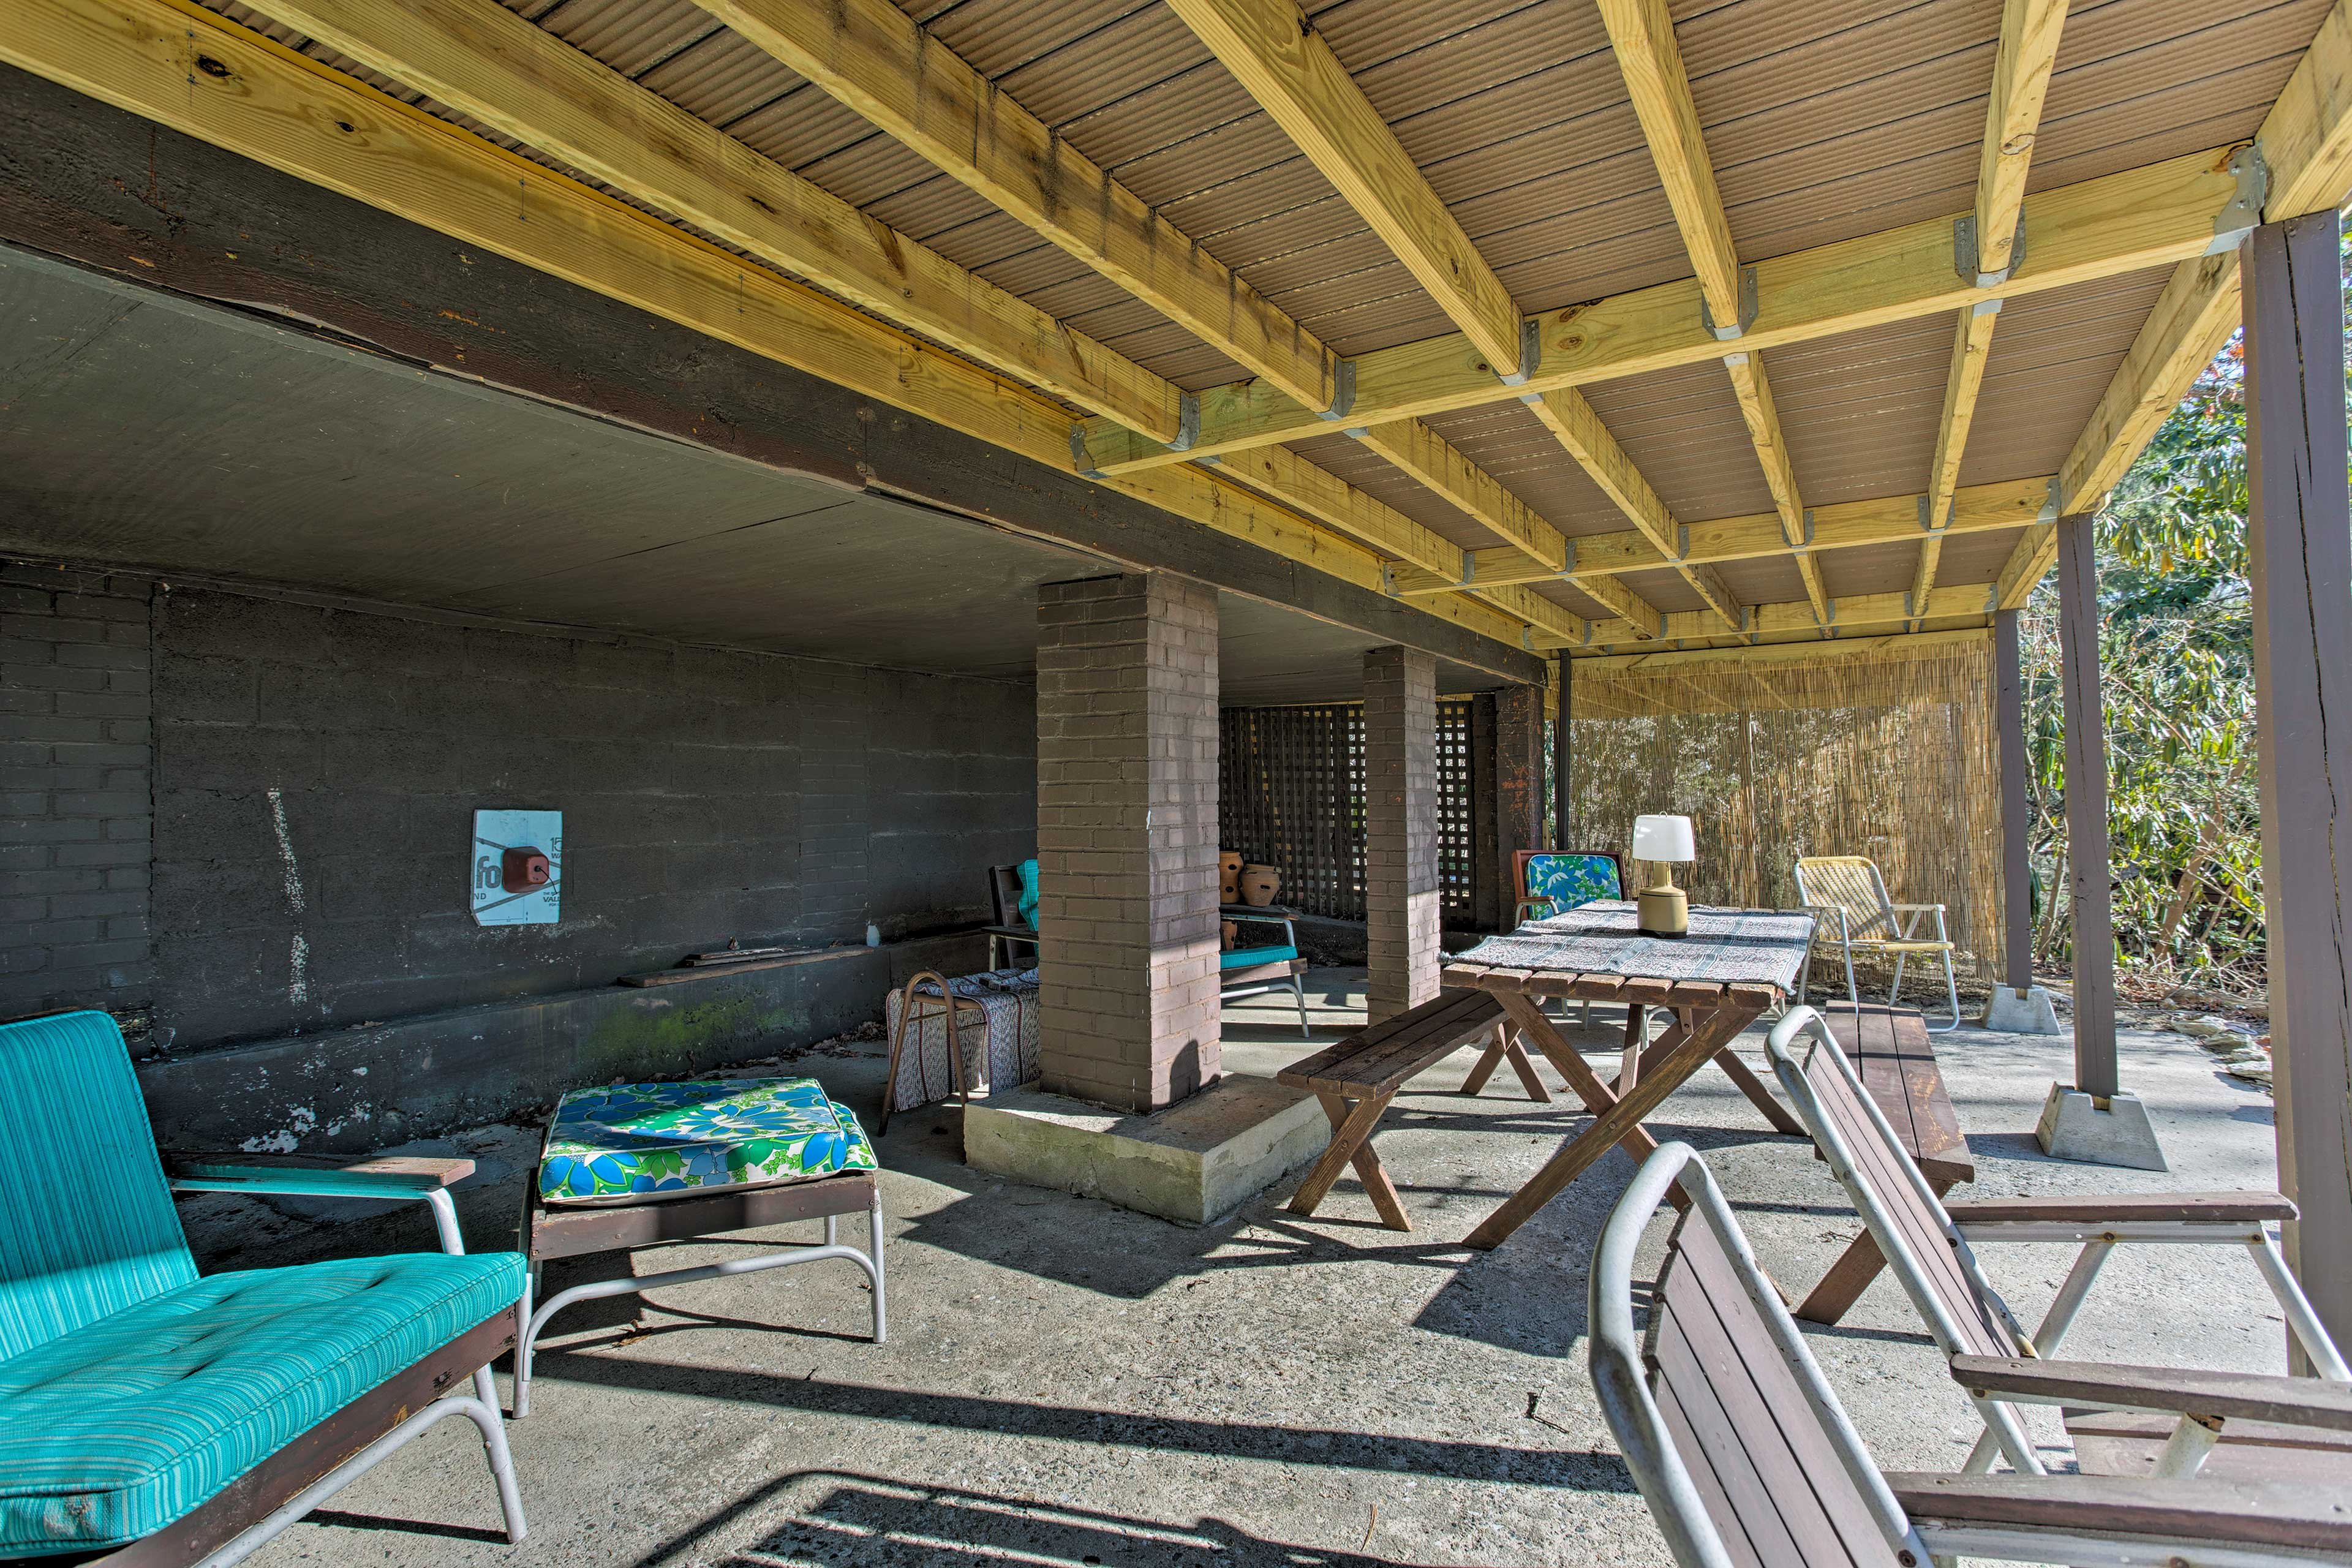 Additional outdoor seating is found just underneath the shade of the deck.